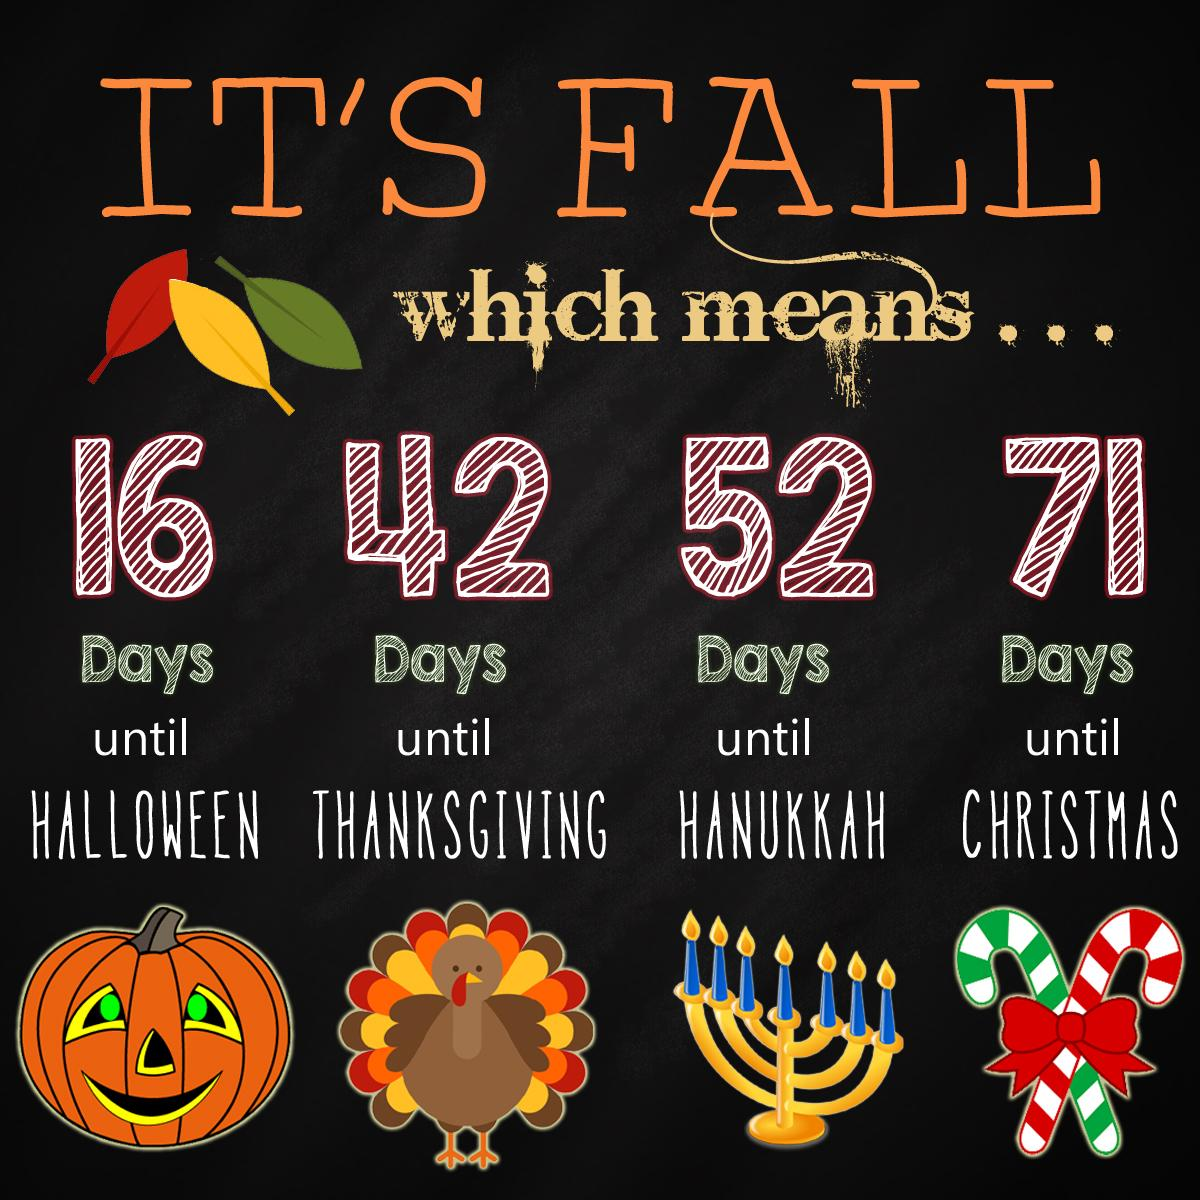 Halloween Thanksgiving Christmas Countdown.Silko Honda On Twitter Just Leaving This Right Here